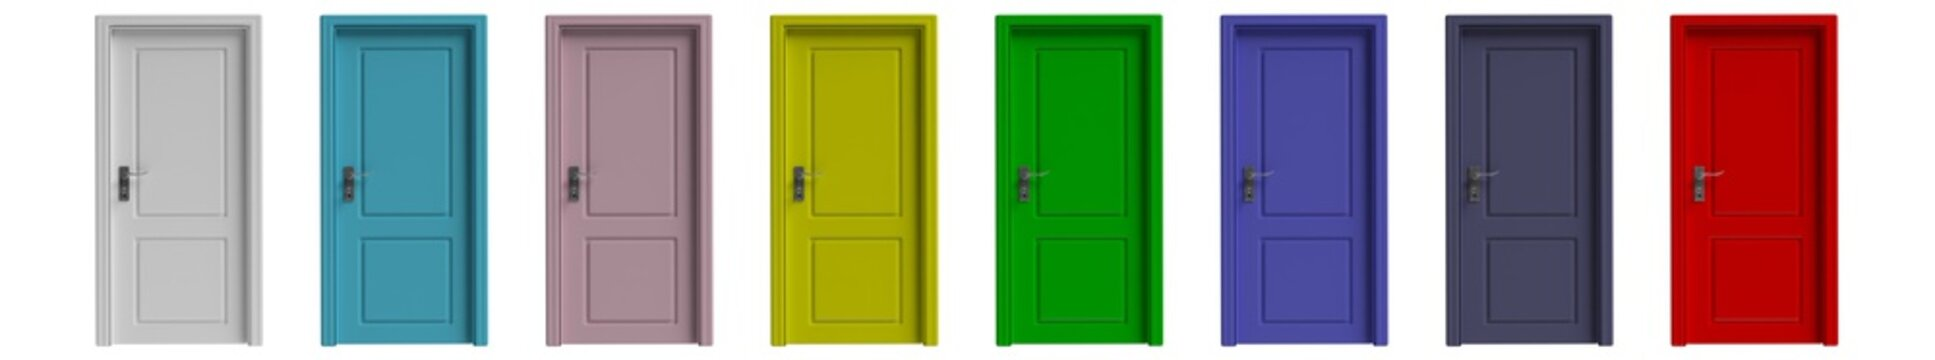 Set of various colors closed doors isolated cutout on white background. 3d illustration